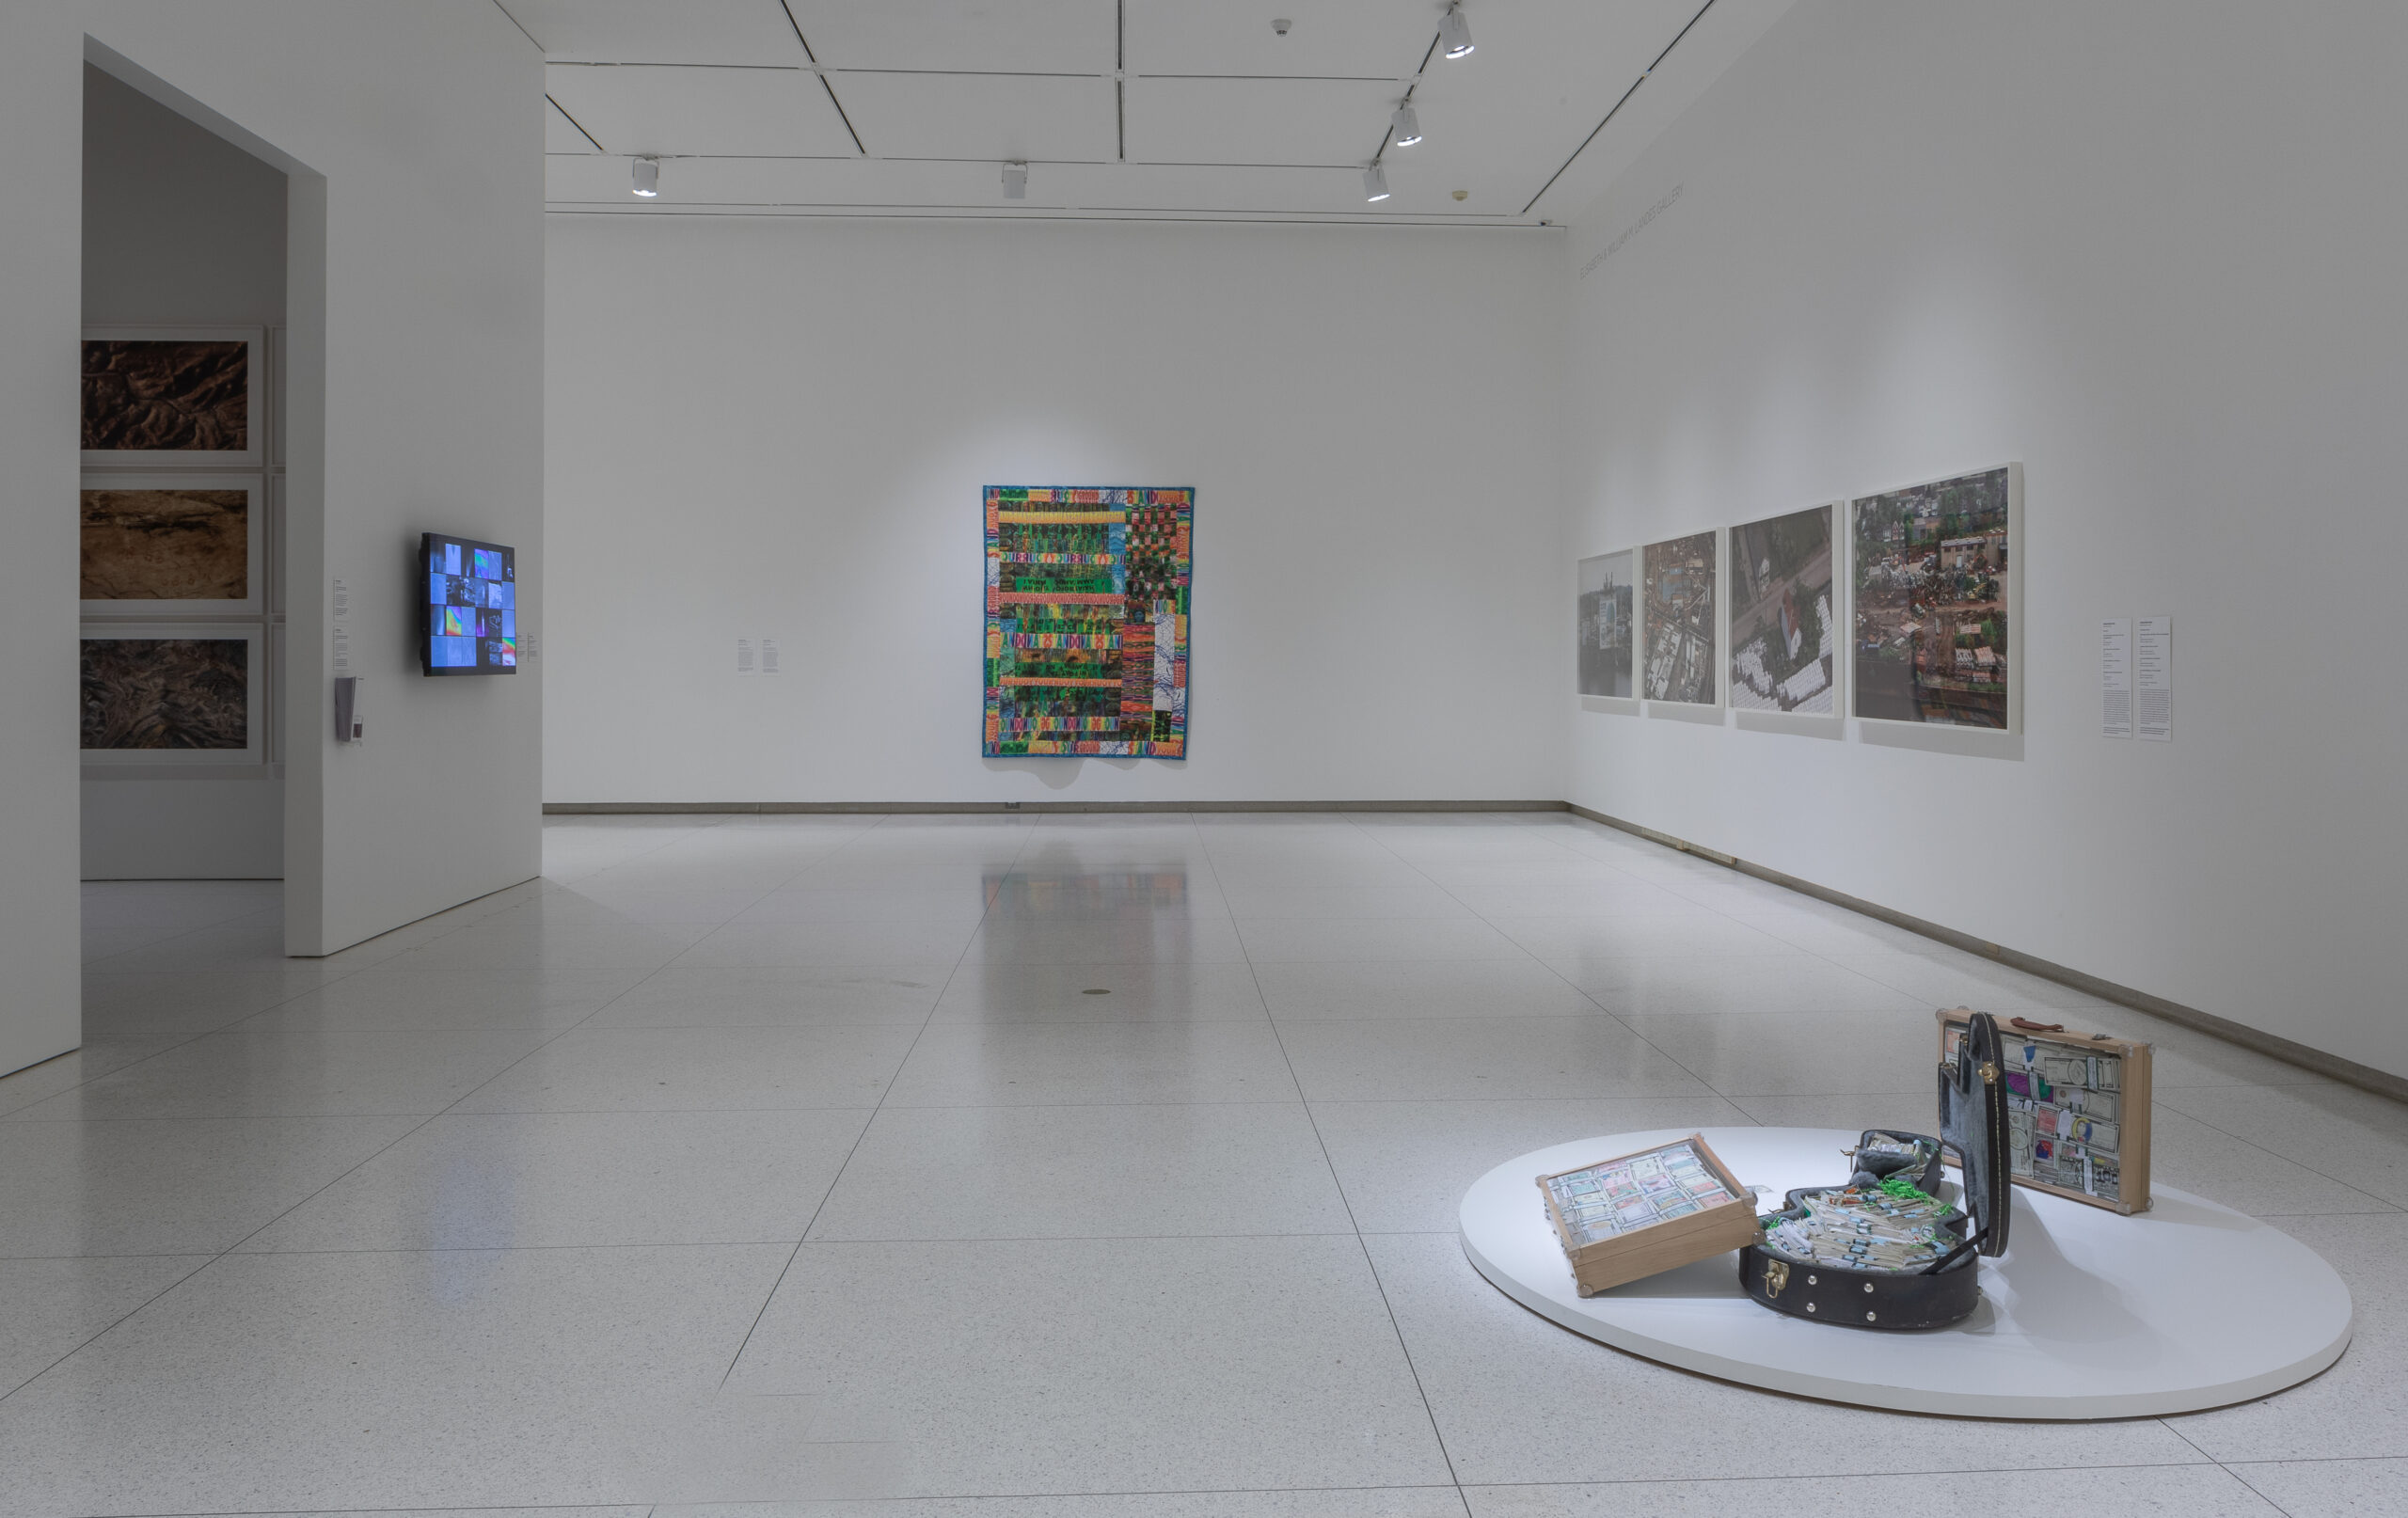 Gallery installation including a colorful tapestry, a video monitor, a guitar case, and photographs.